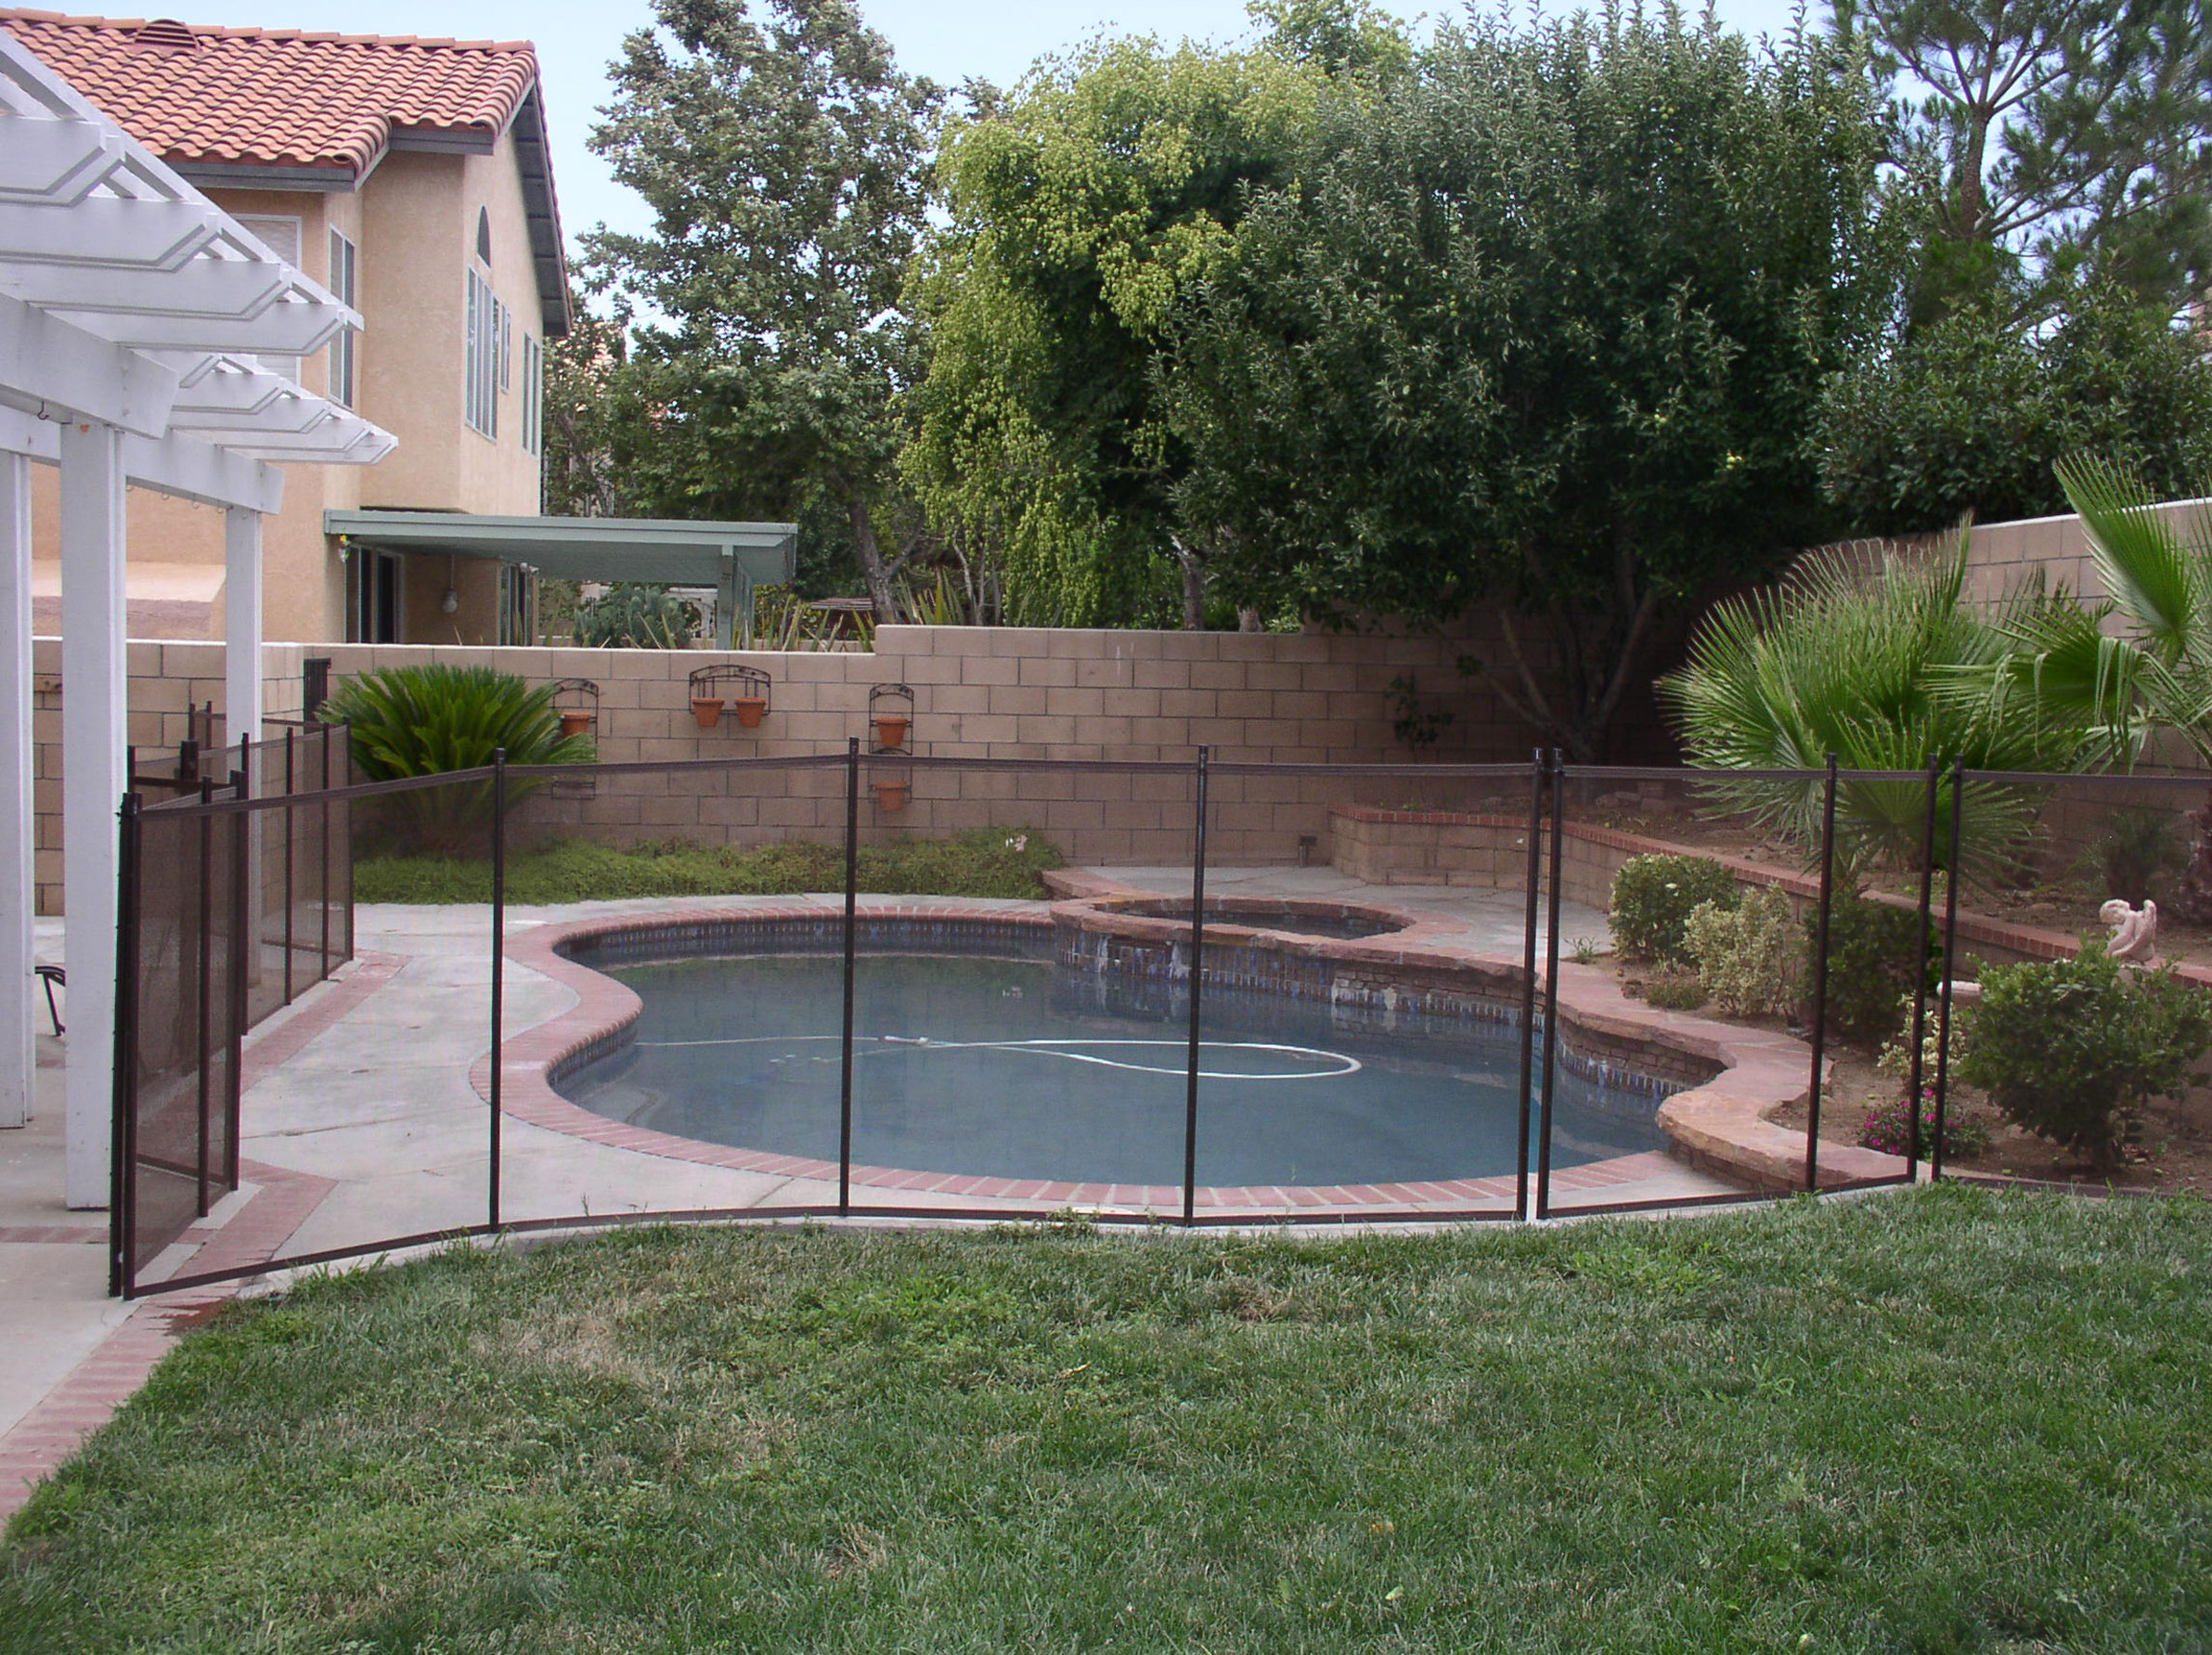 Benefits Of Mesh Pool Fences Childguard Diy Pool Fence